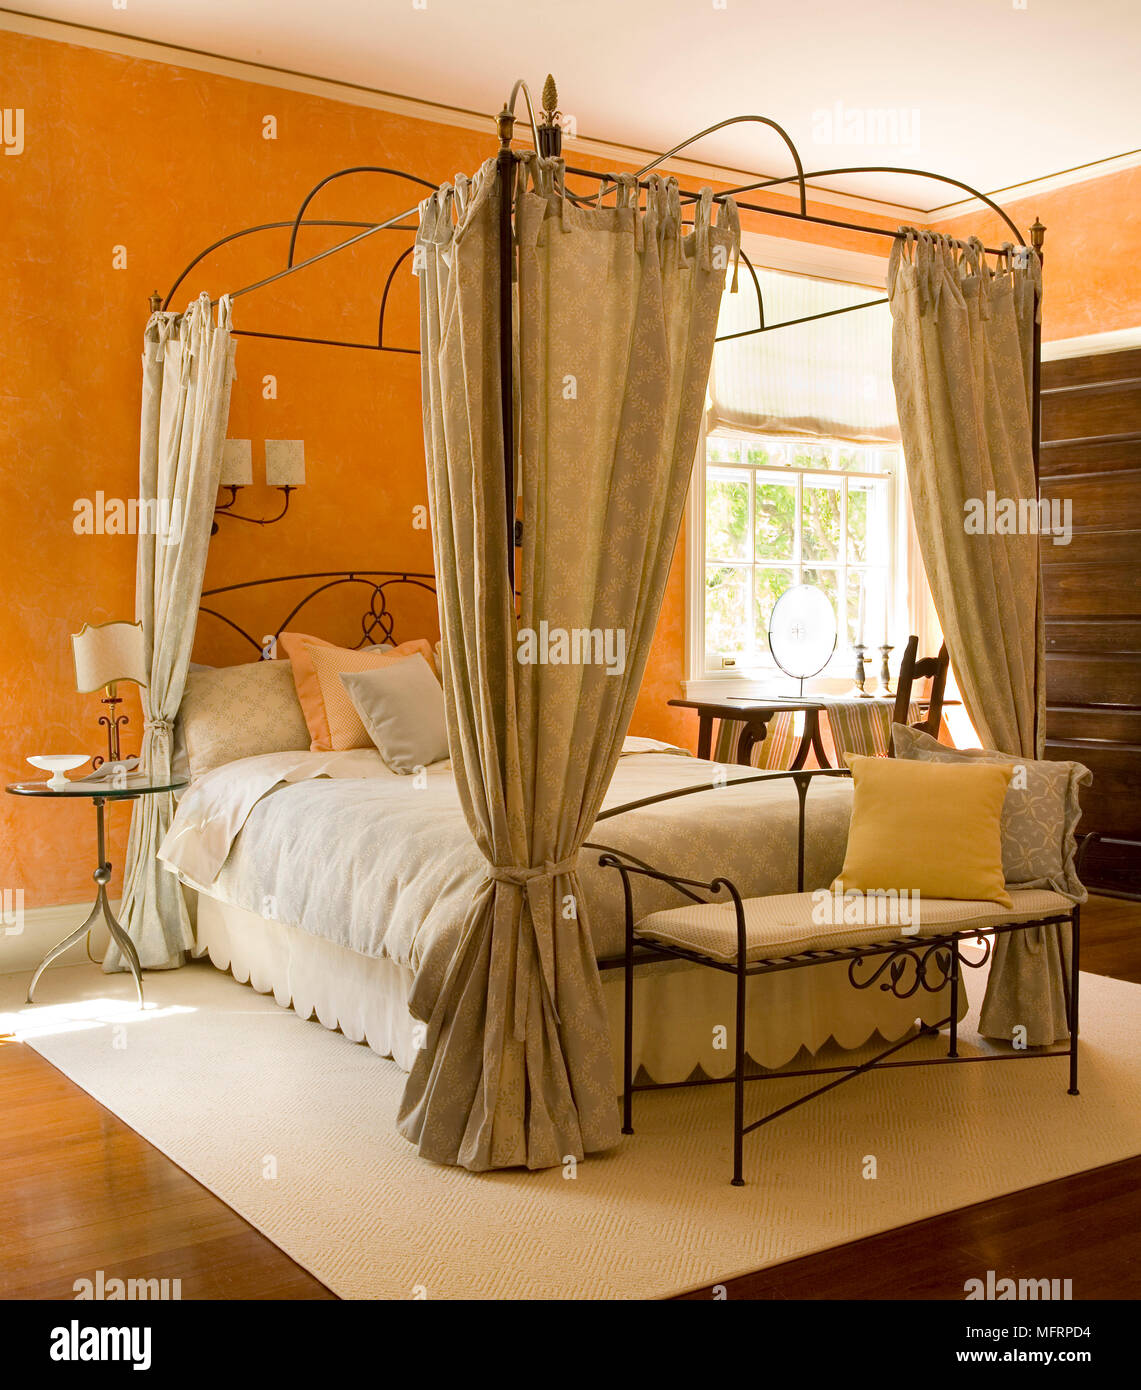 https www alamy com metal four poster bed with curtains in traditional style bedroom image181846032 html